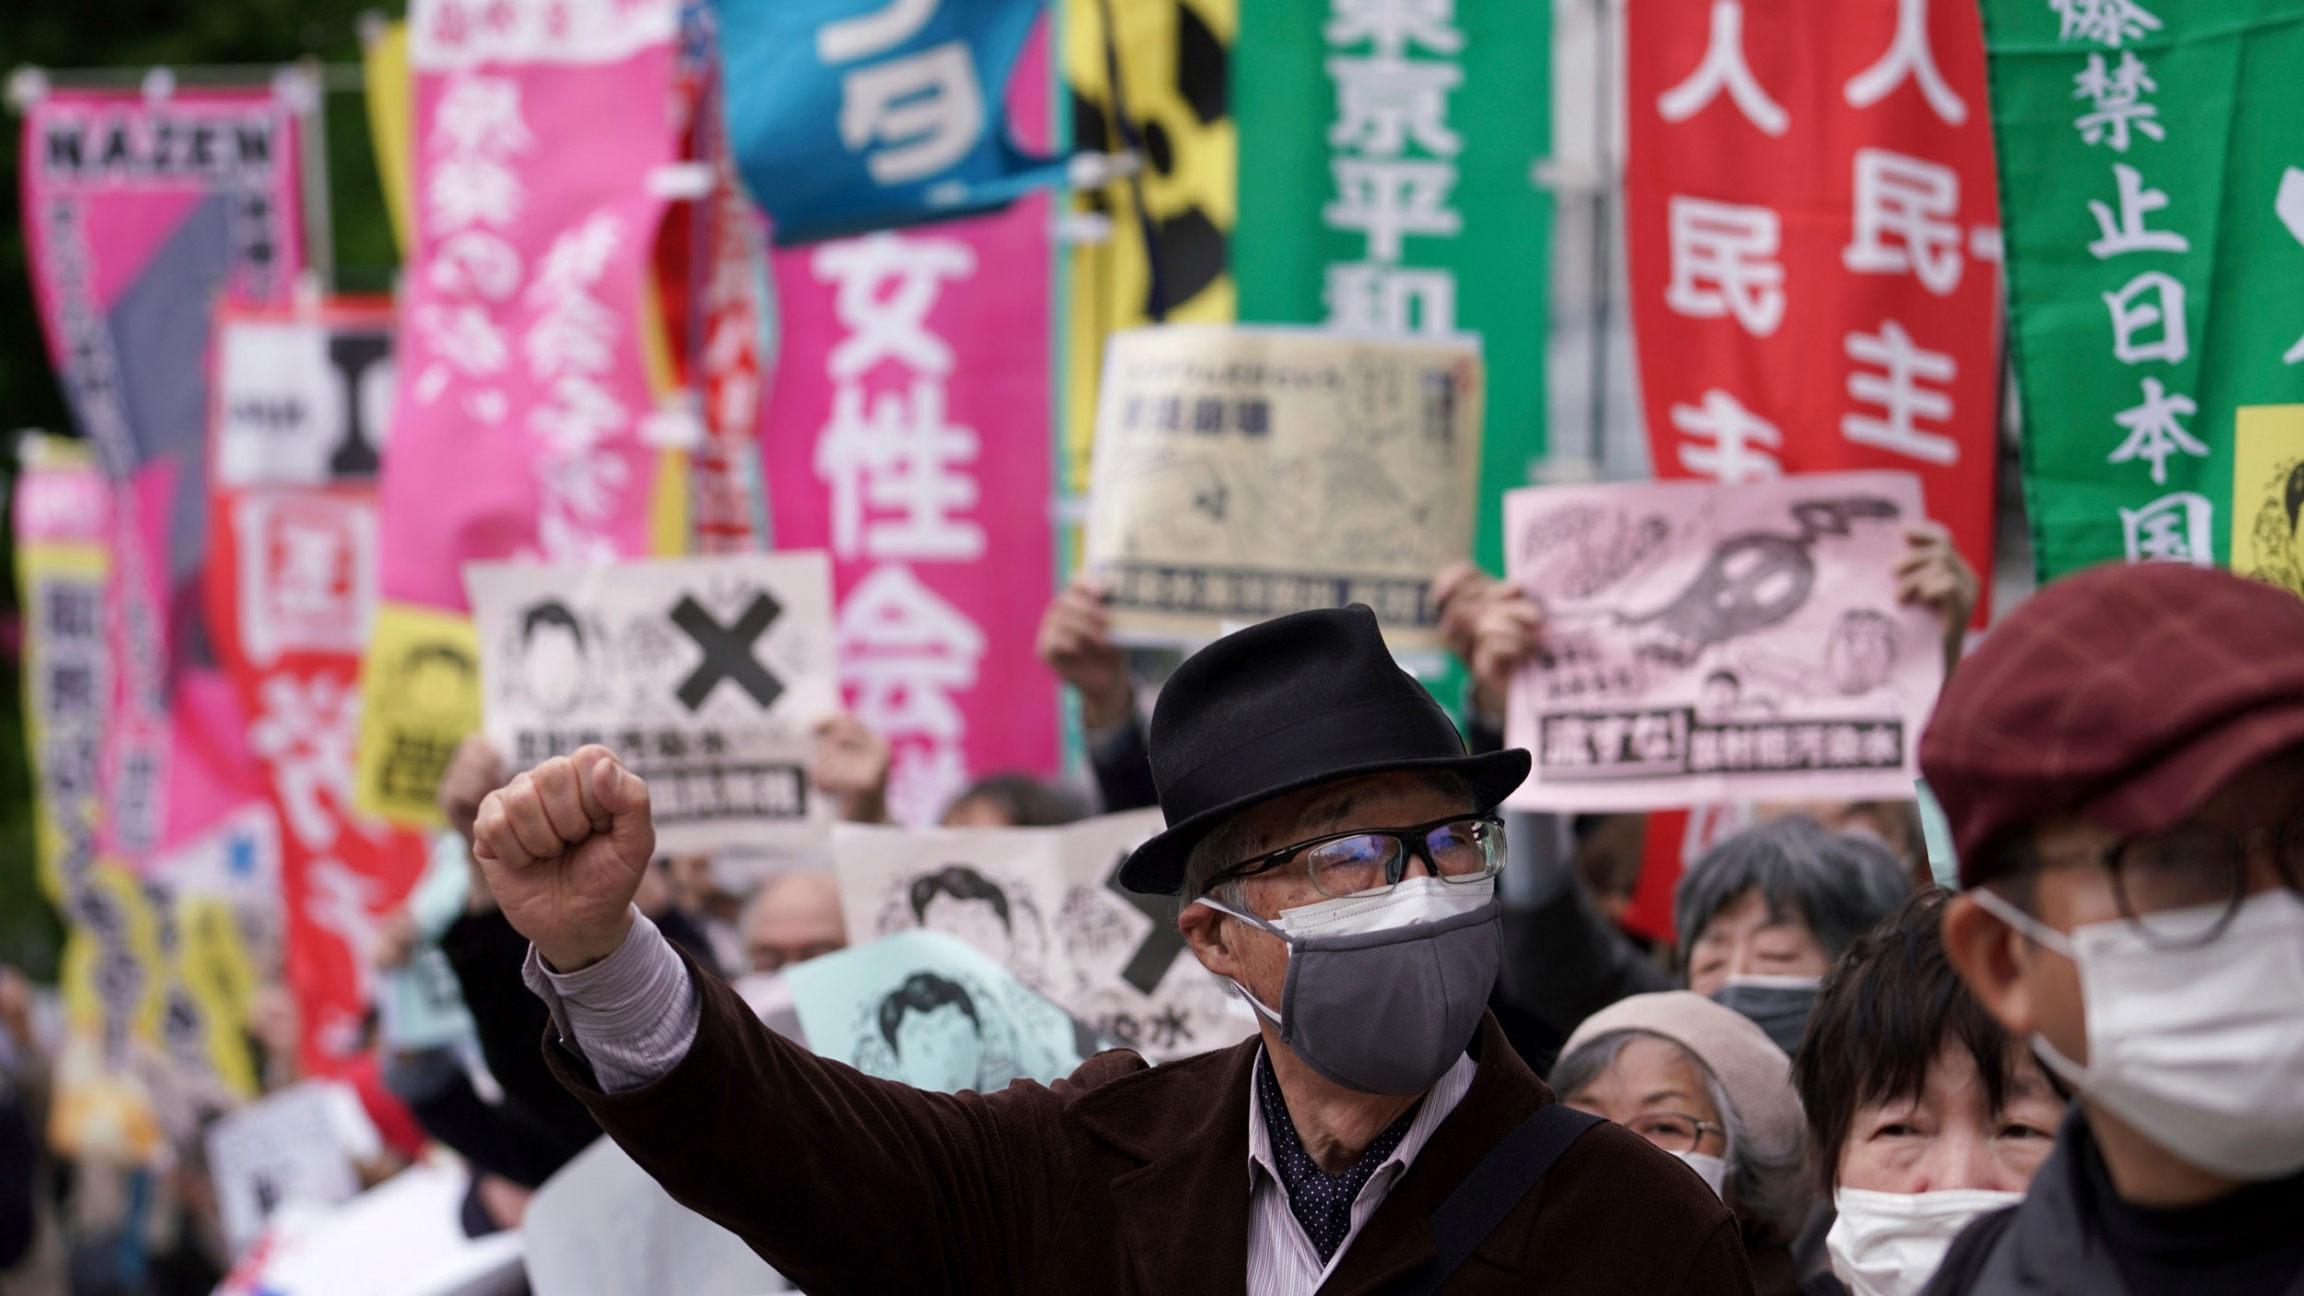 A man is shown among a crowd of protesters wearing a dark jacket, hat and face mask with his right hand in the air.